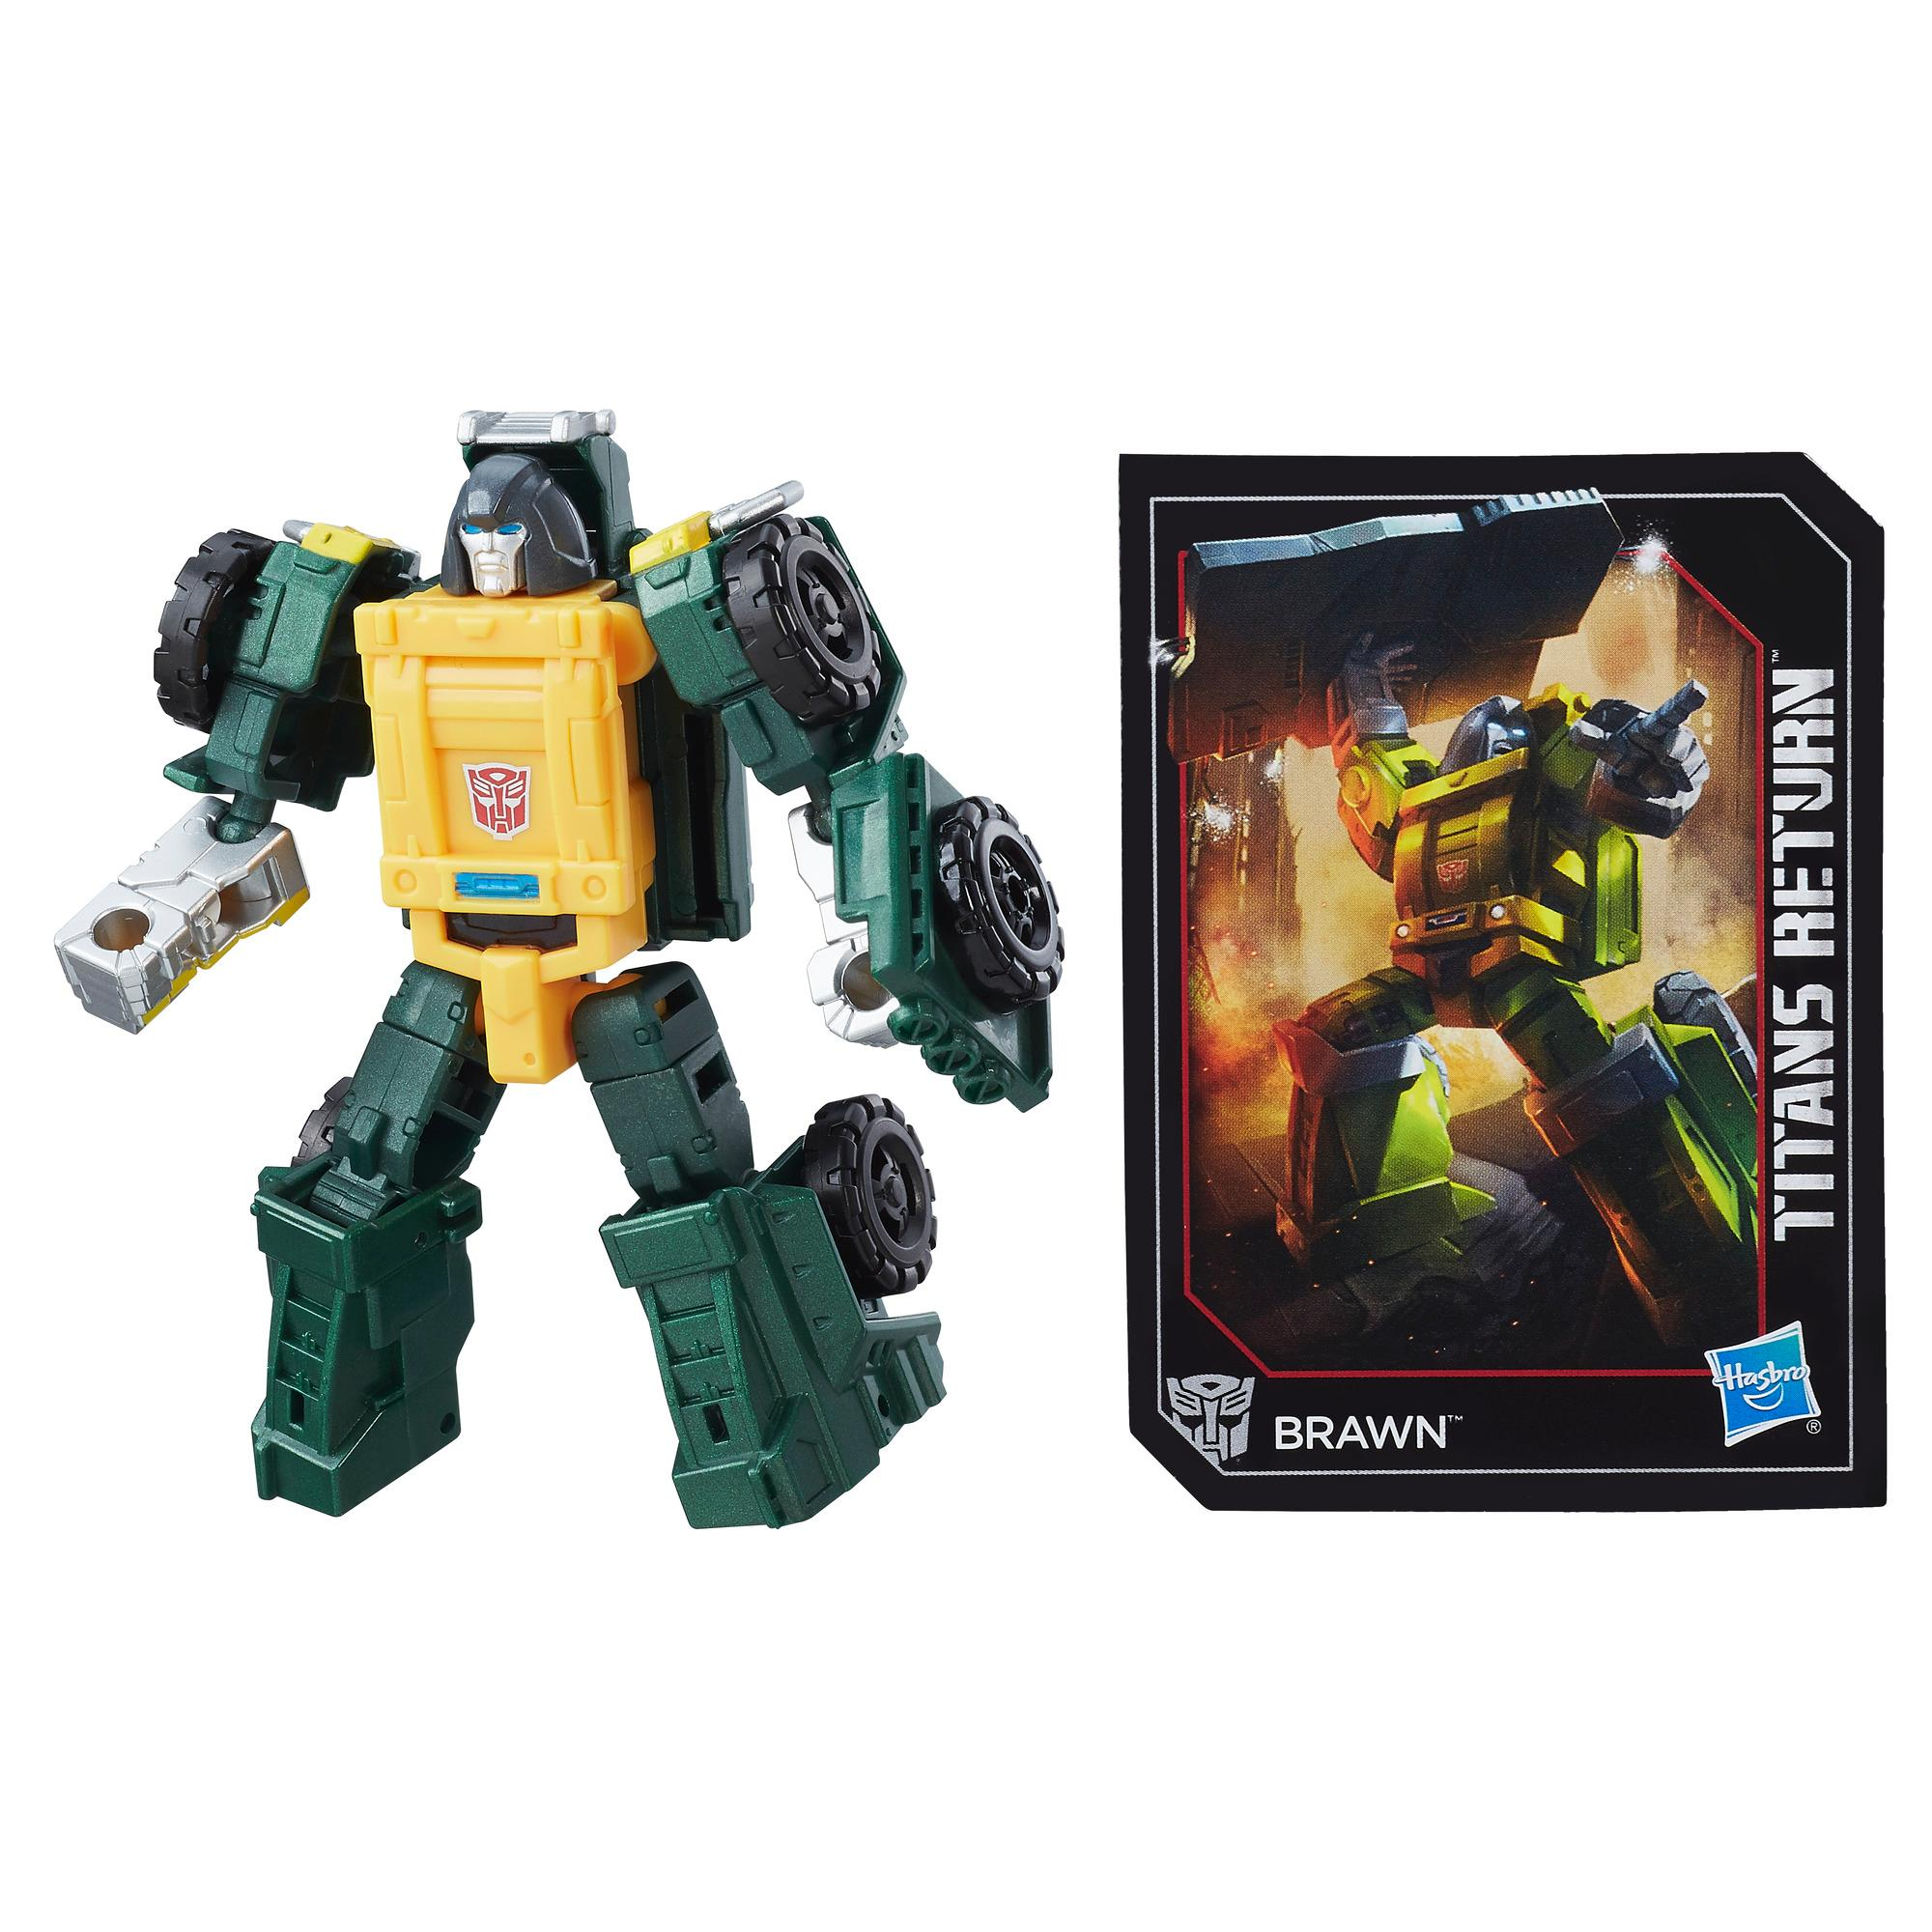 Transformers Generations Titans Return Classe Lendária Brawn